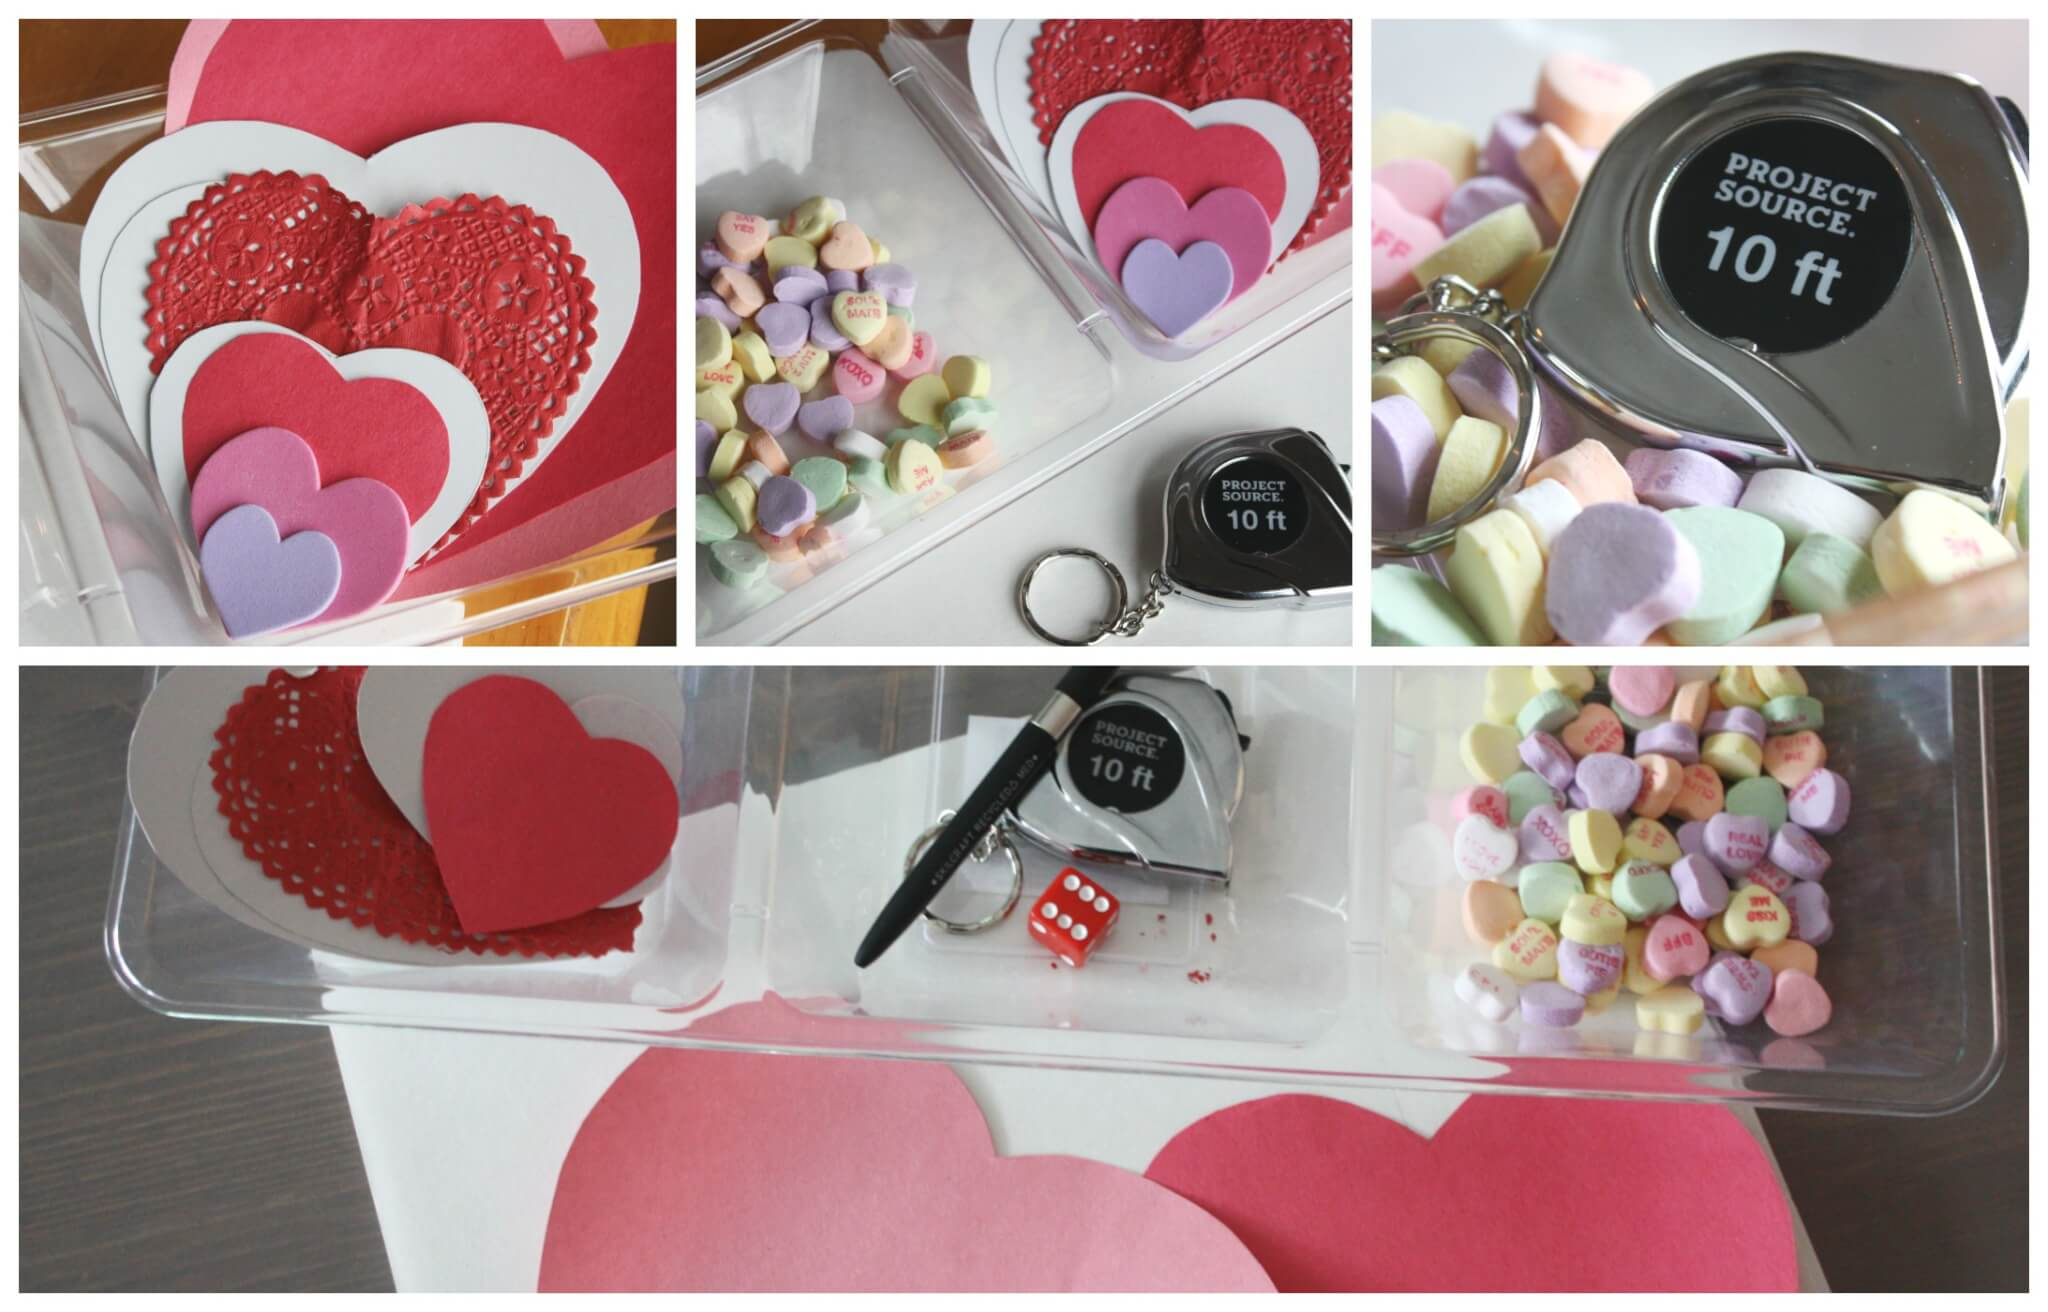 Candy Heart Measuring Math Activity For Kids